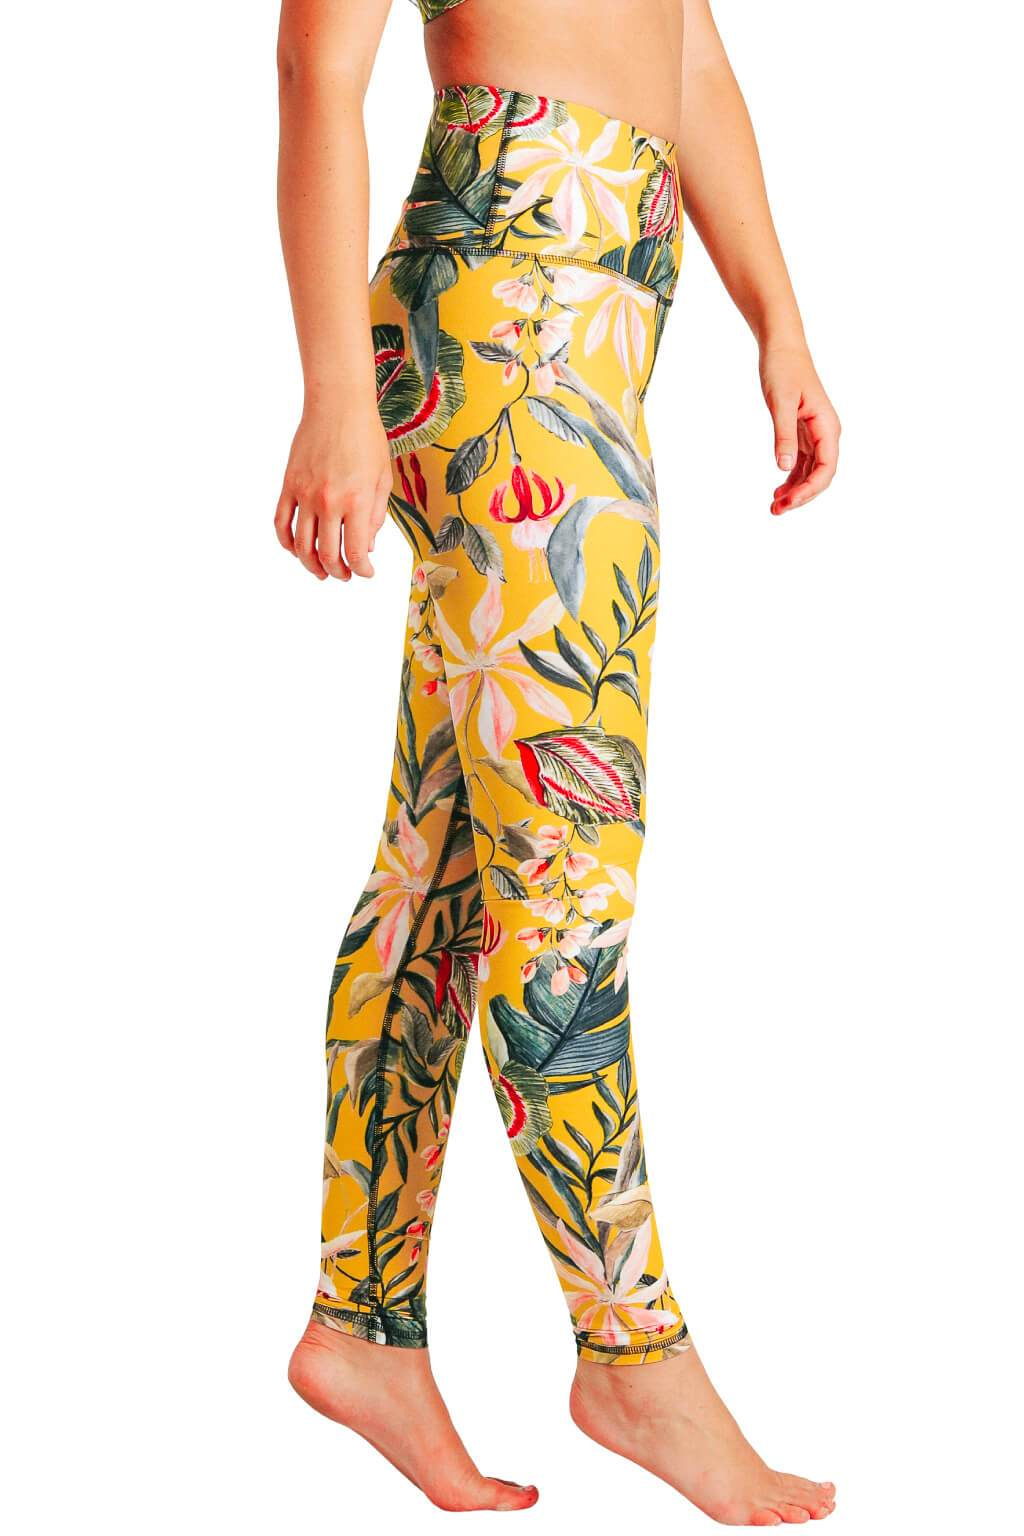 Curry Up Printed Yoga Leggings